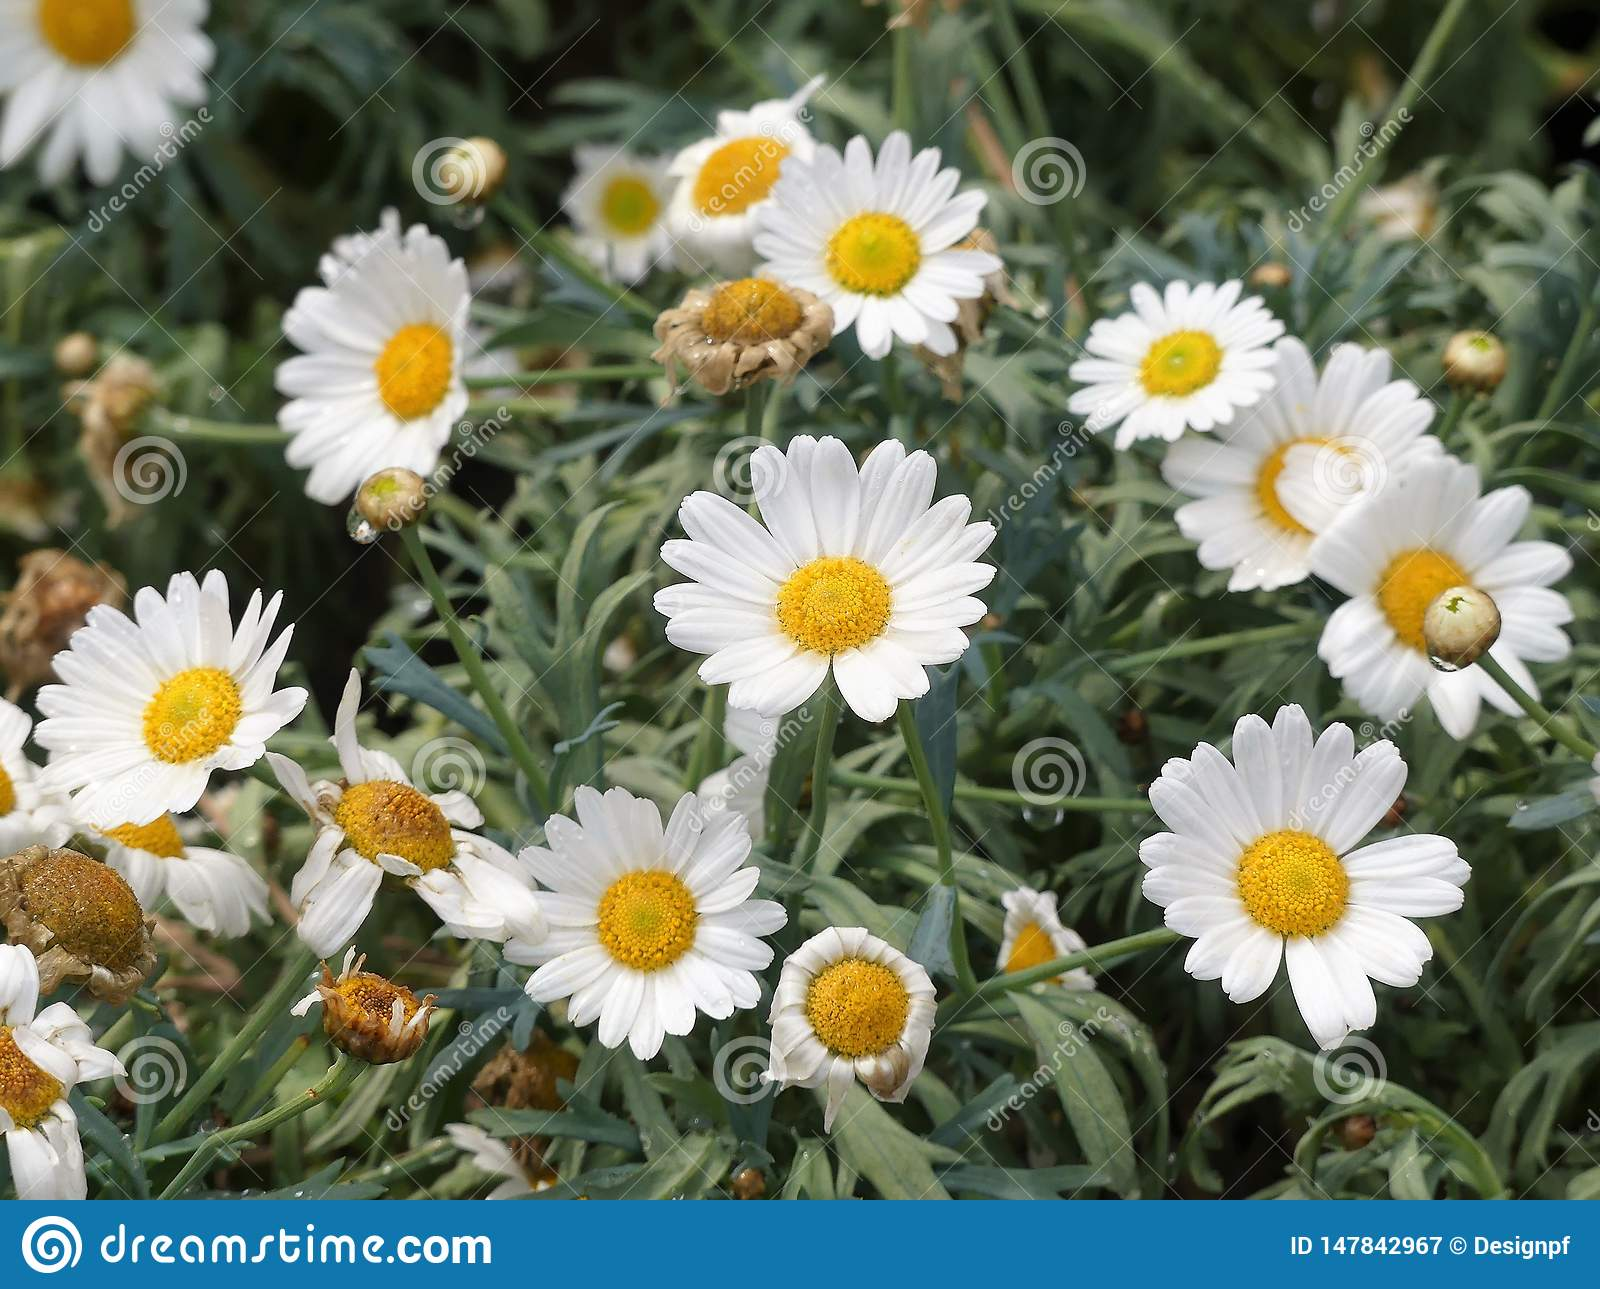 Beautiful white marguerite daisy flowers with yellow capitulum